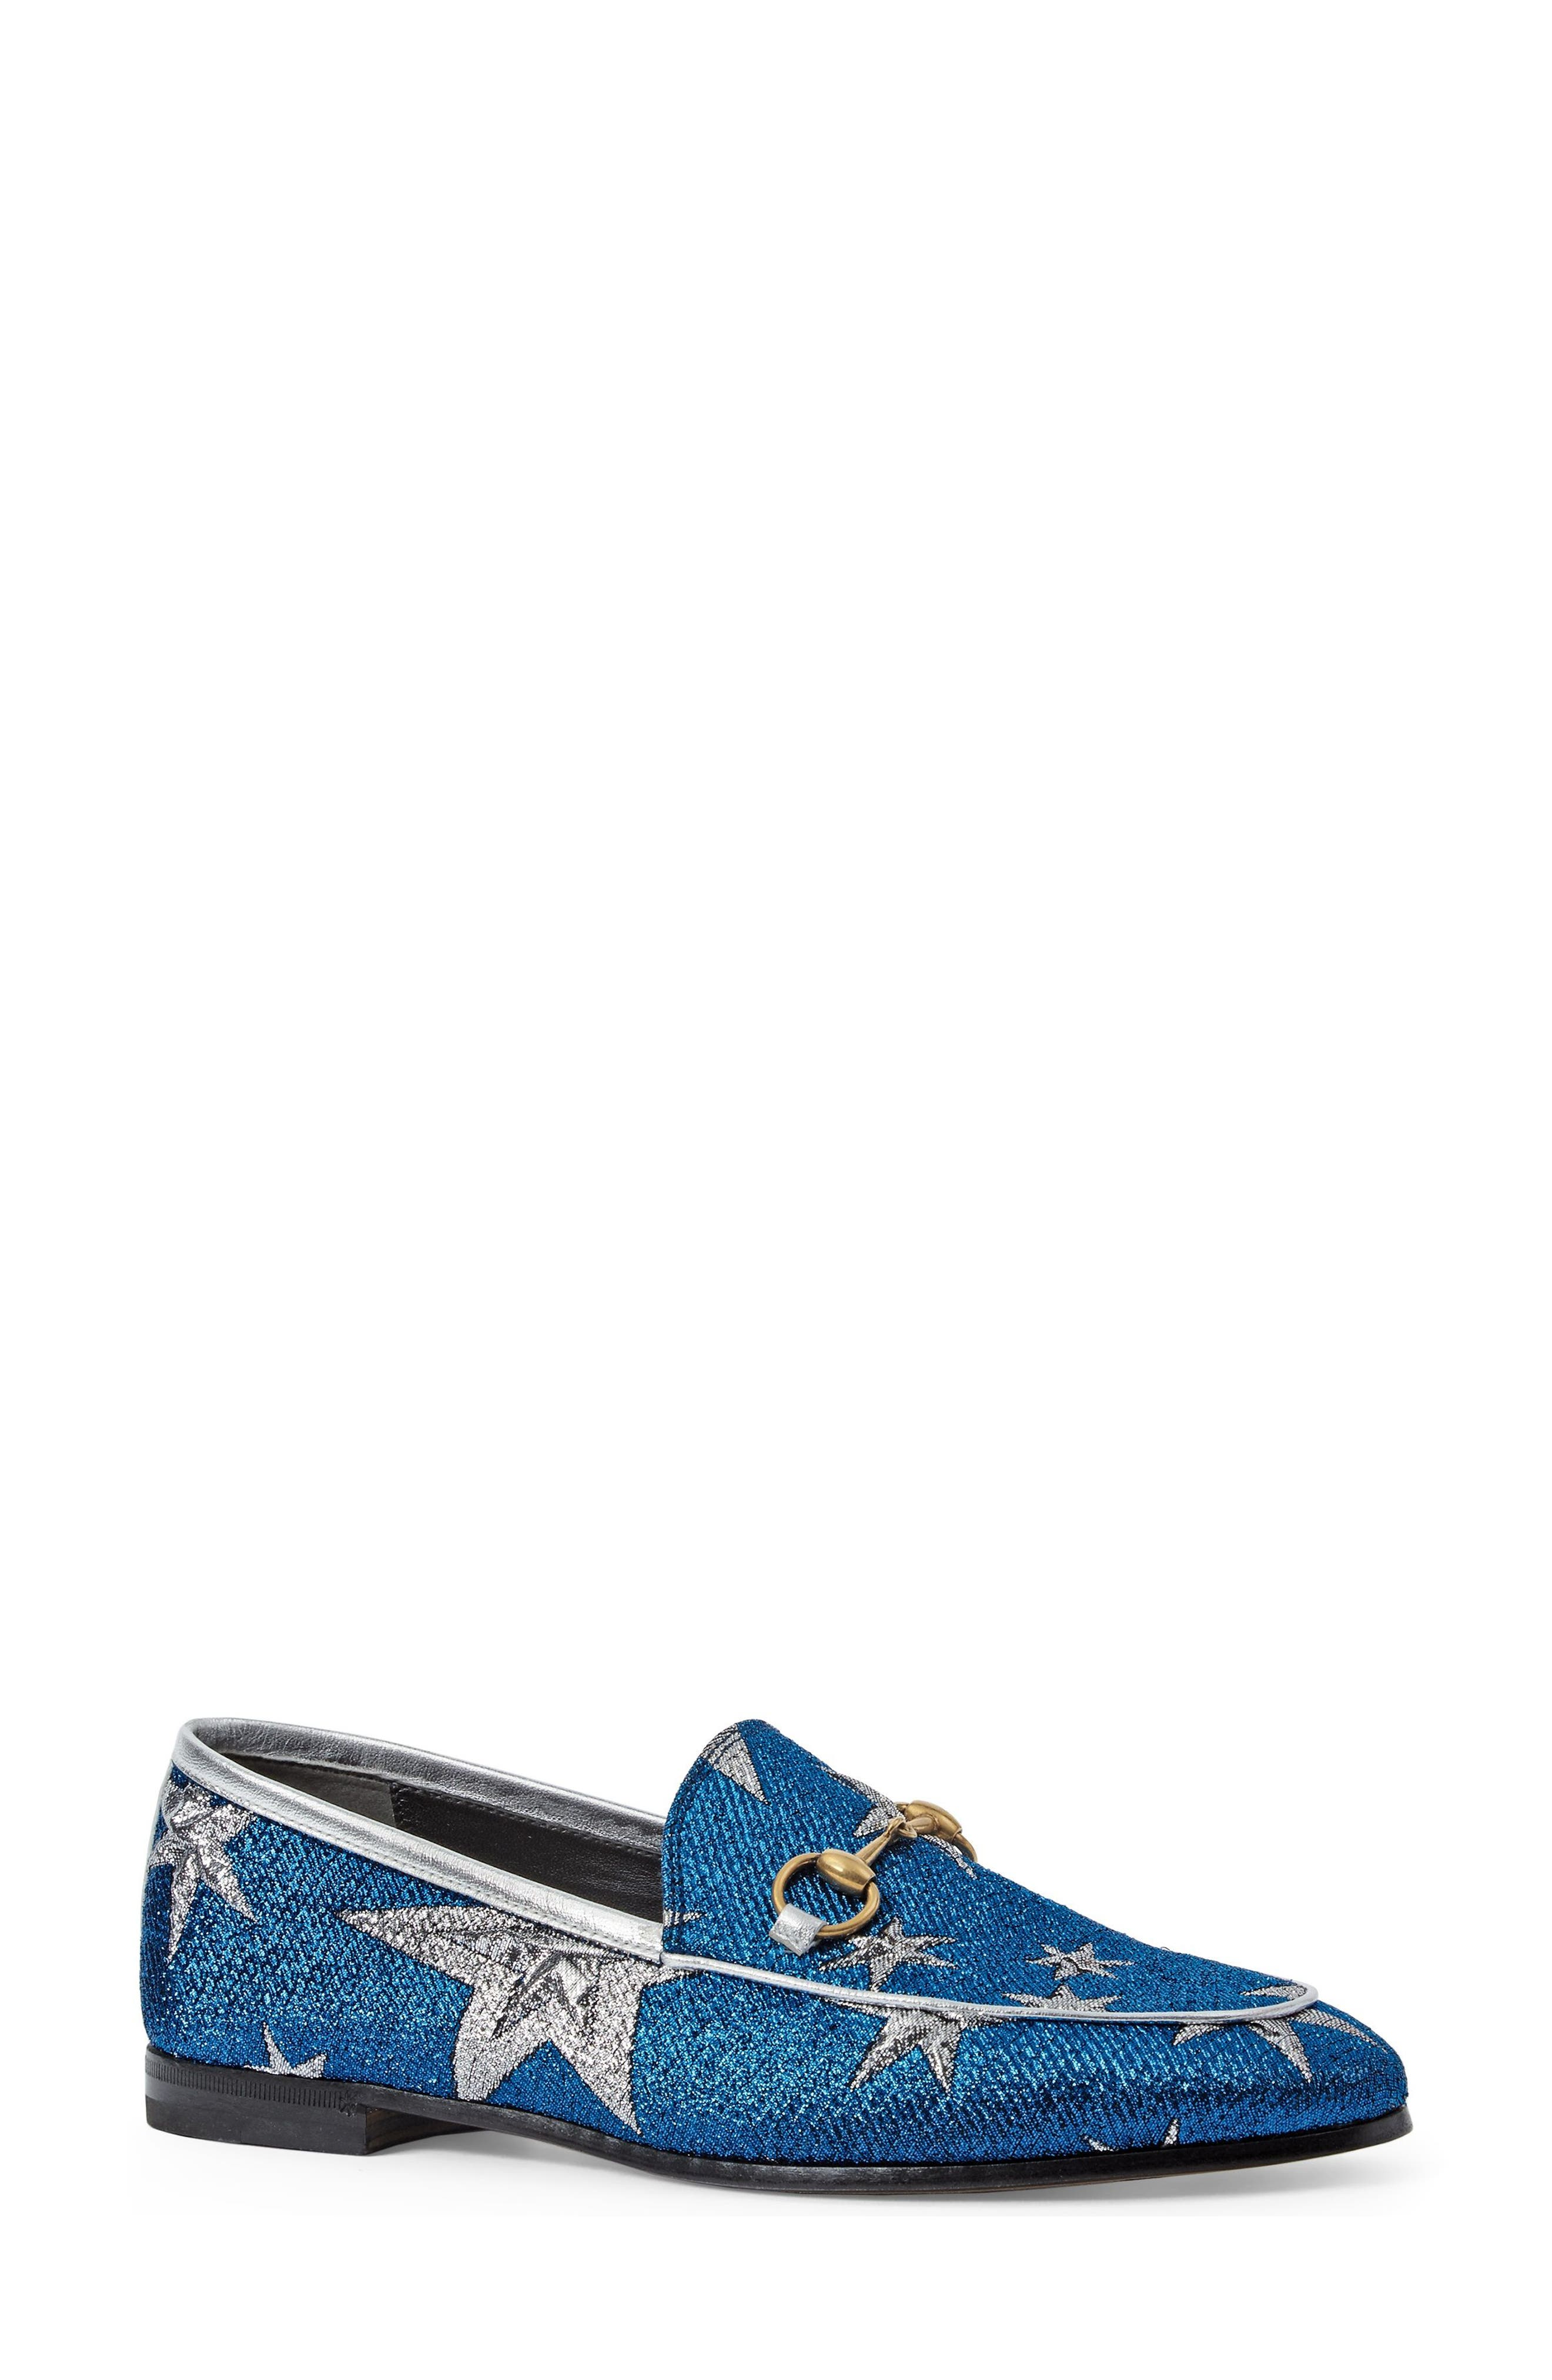 Main Image - Gucci Brixton Star Loafer (Women)